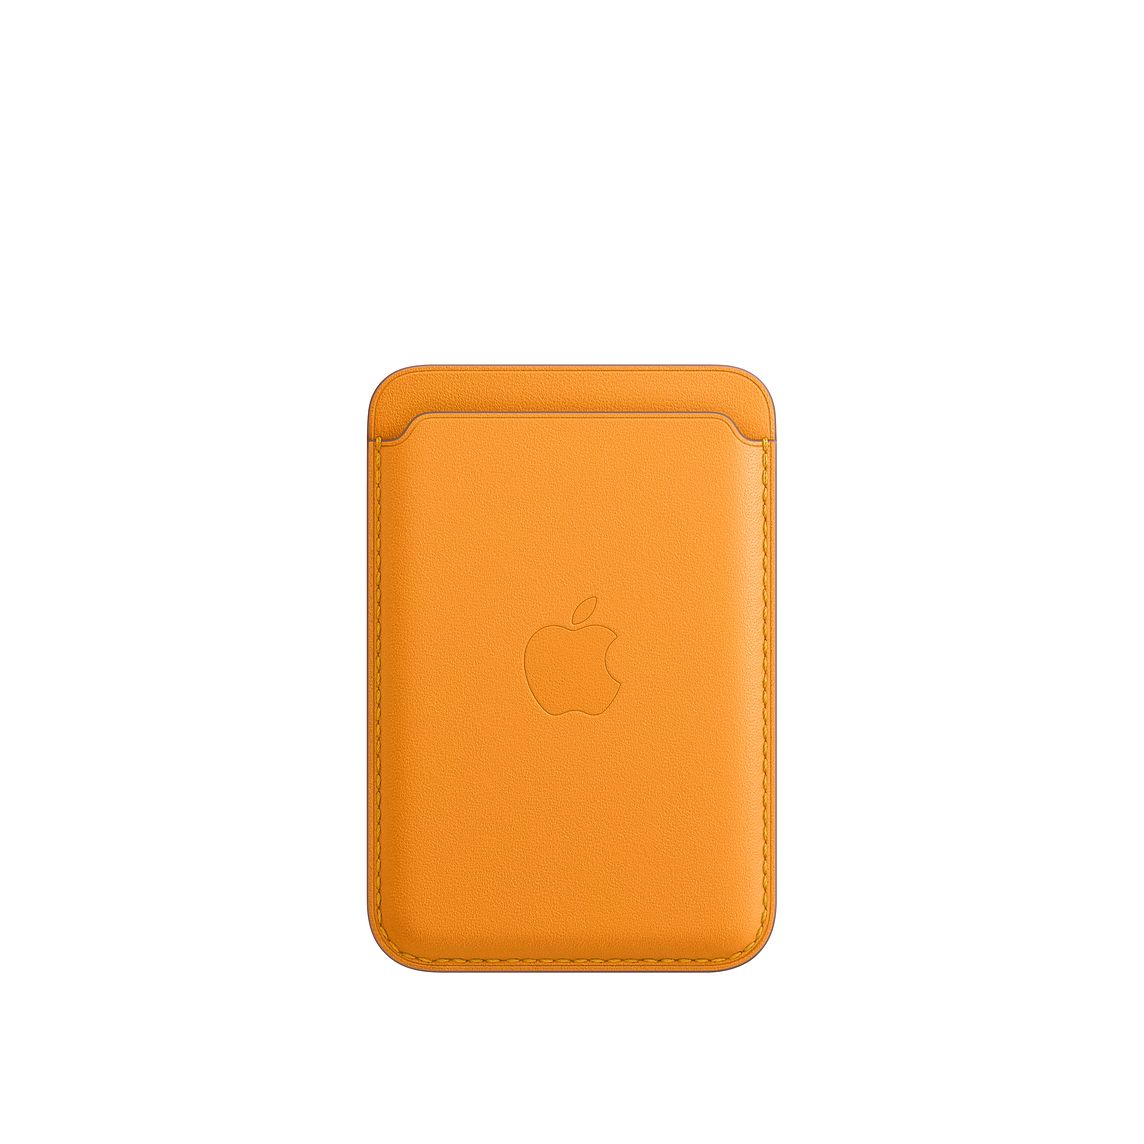 - iPhone Leather Wallet with MagSafe / Amapola de California 1